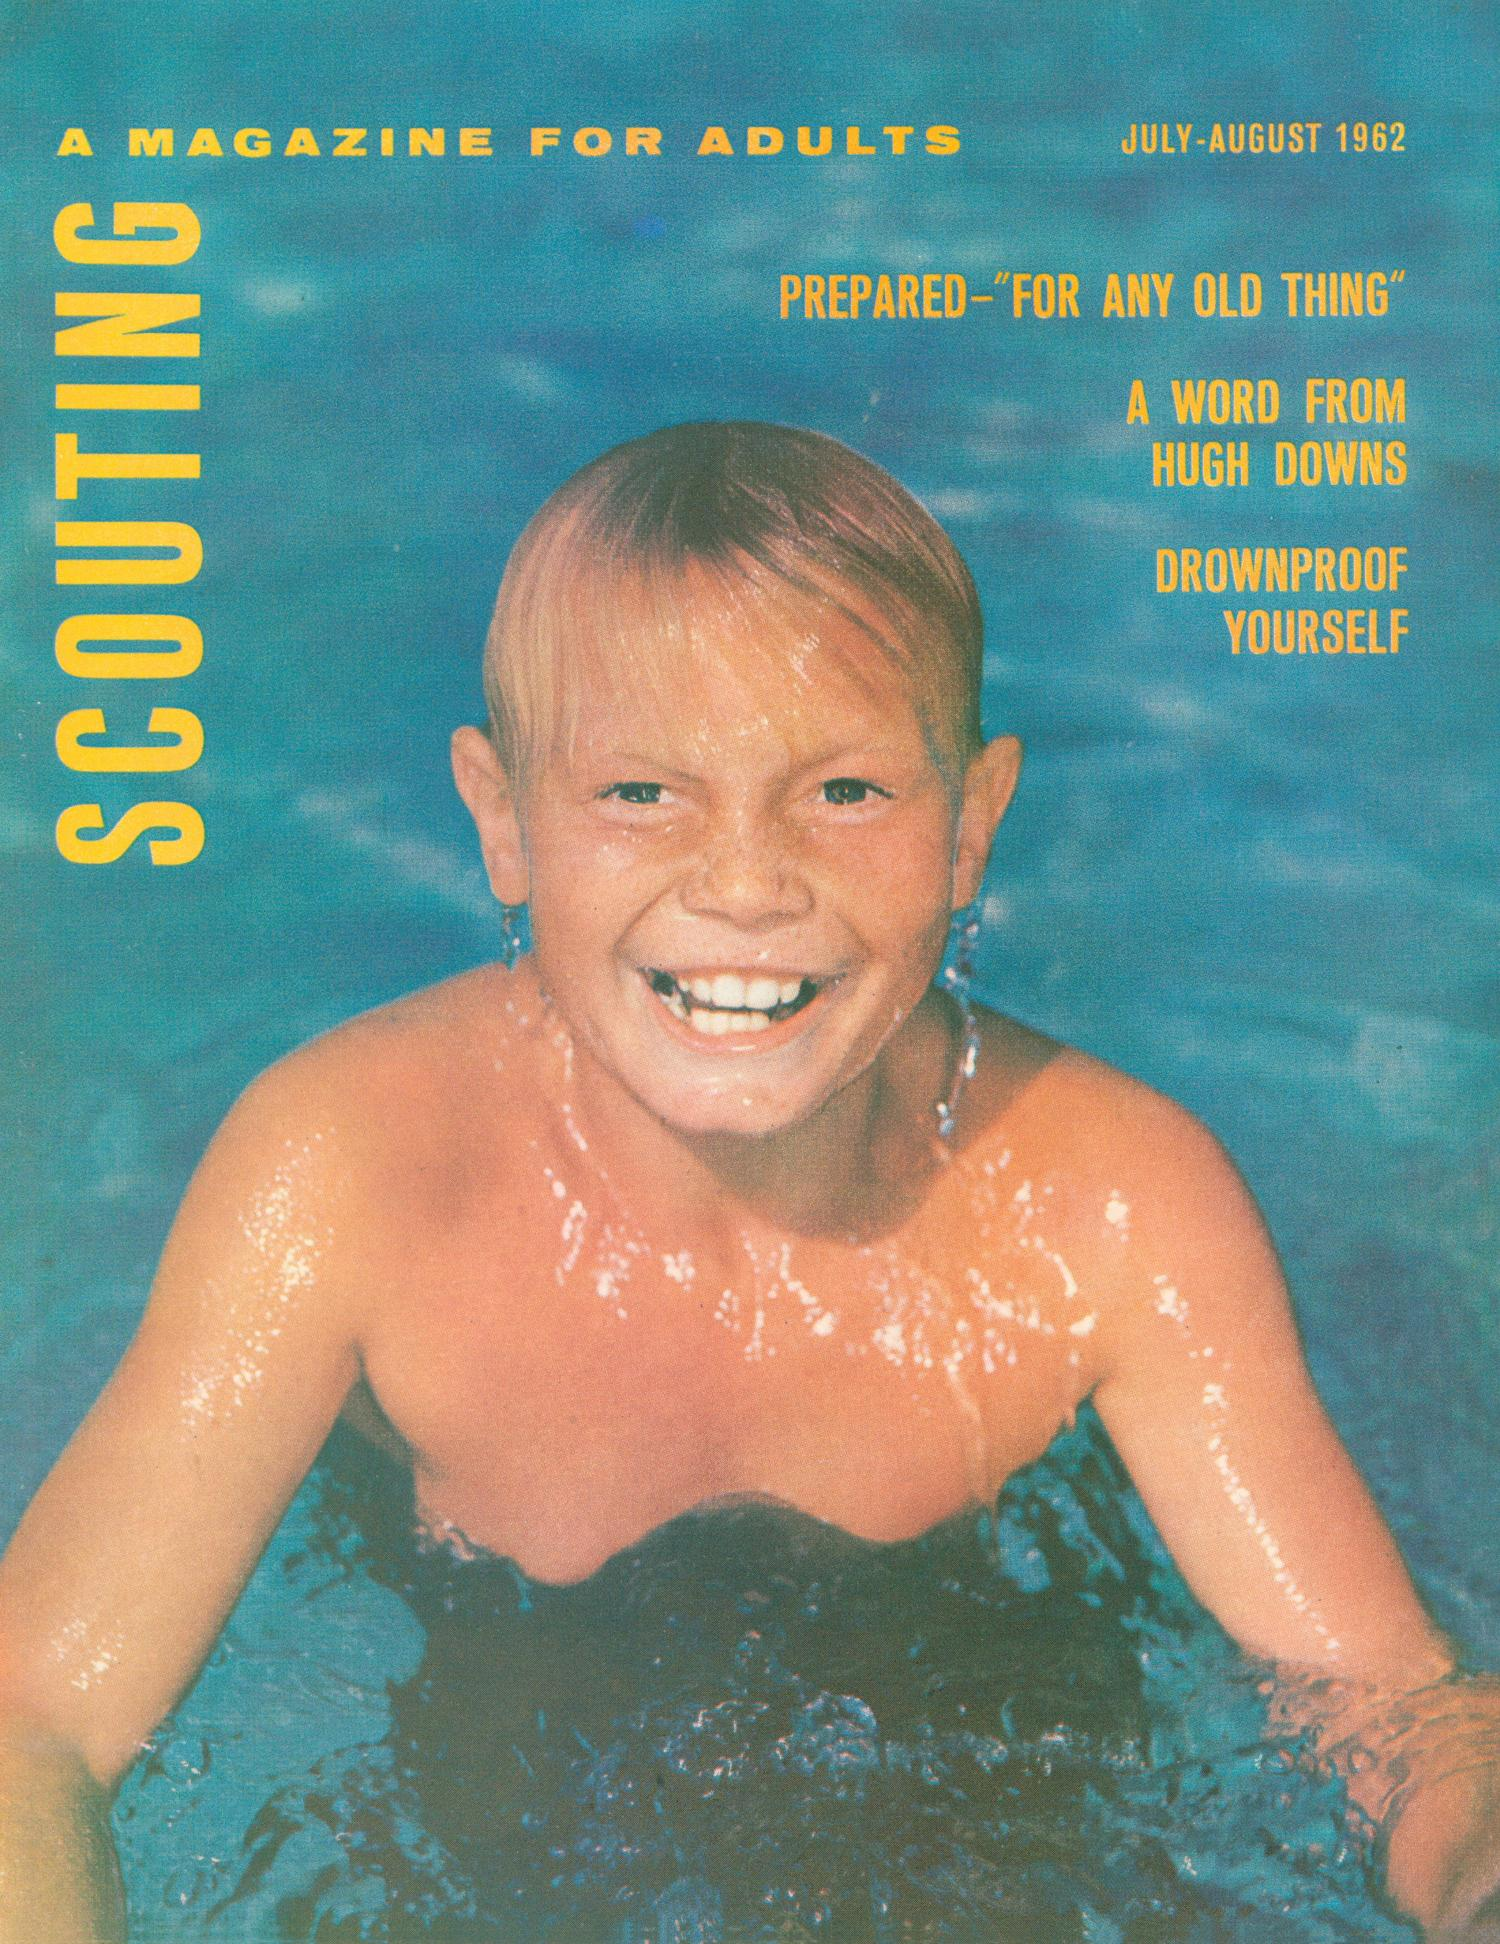 Scouting, Volume 50, Number 6, July-August 1962                                                                                                      Front Cover